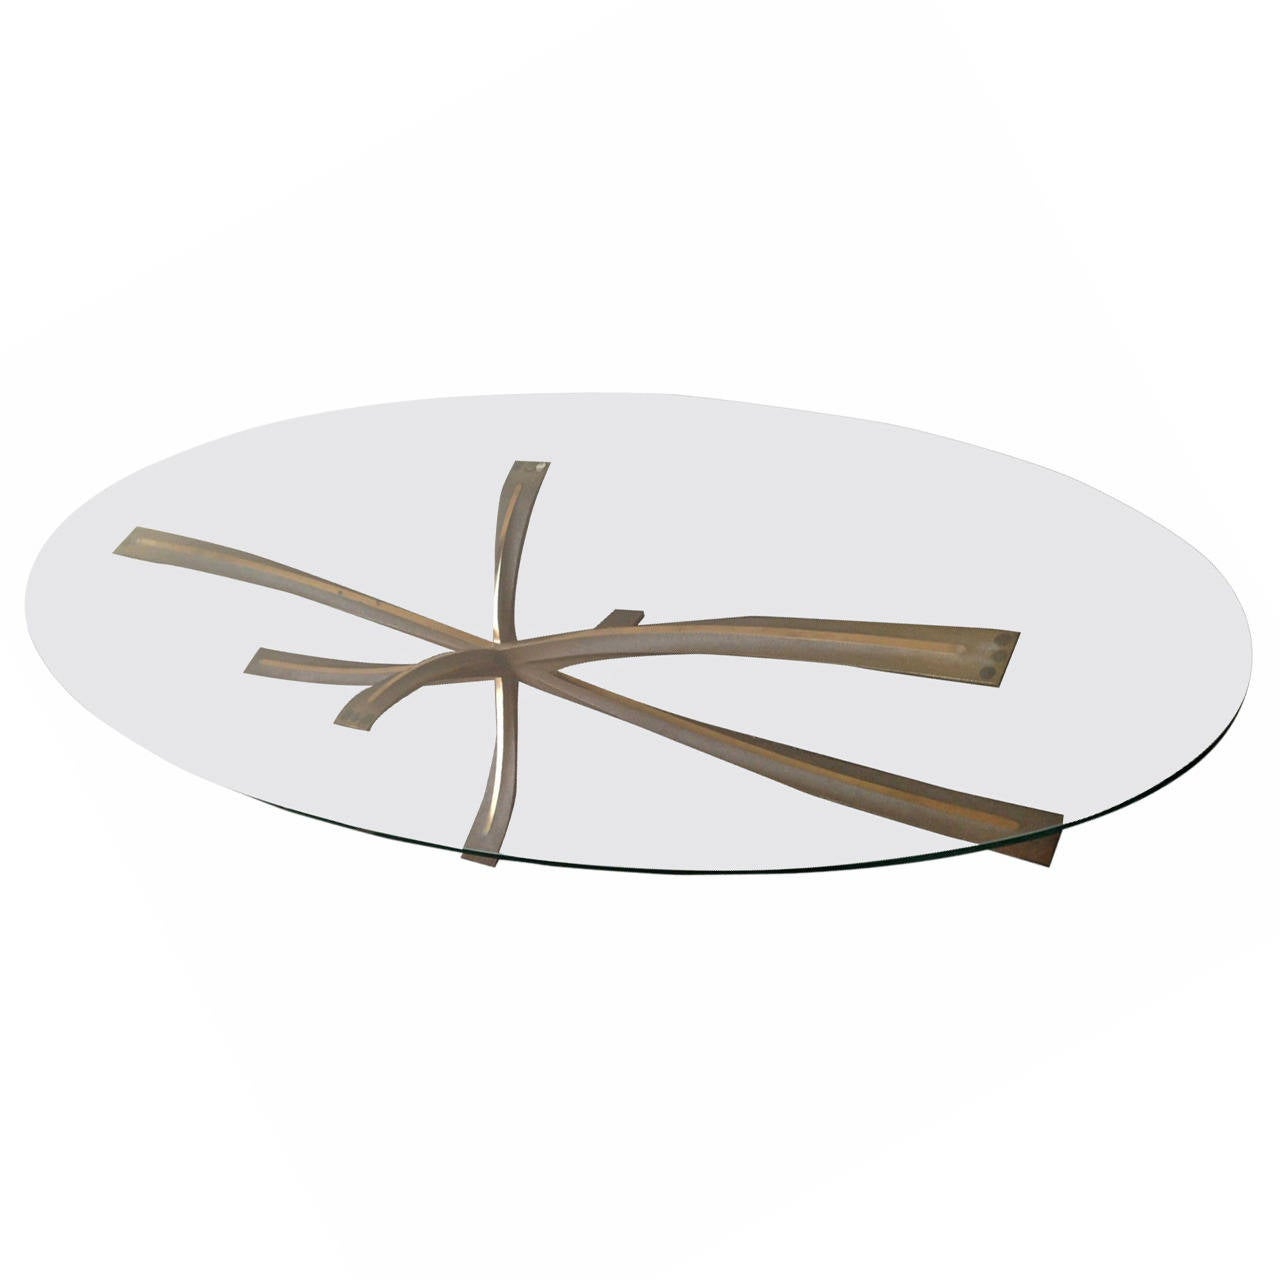 very rare coffee table by michel mangematin